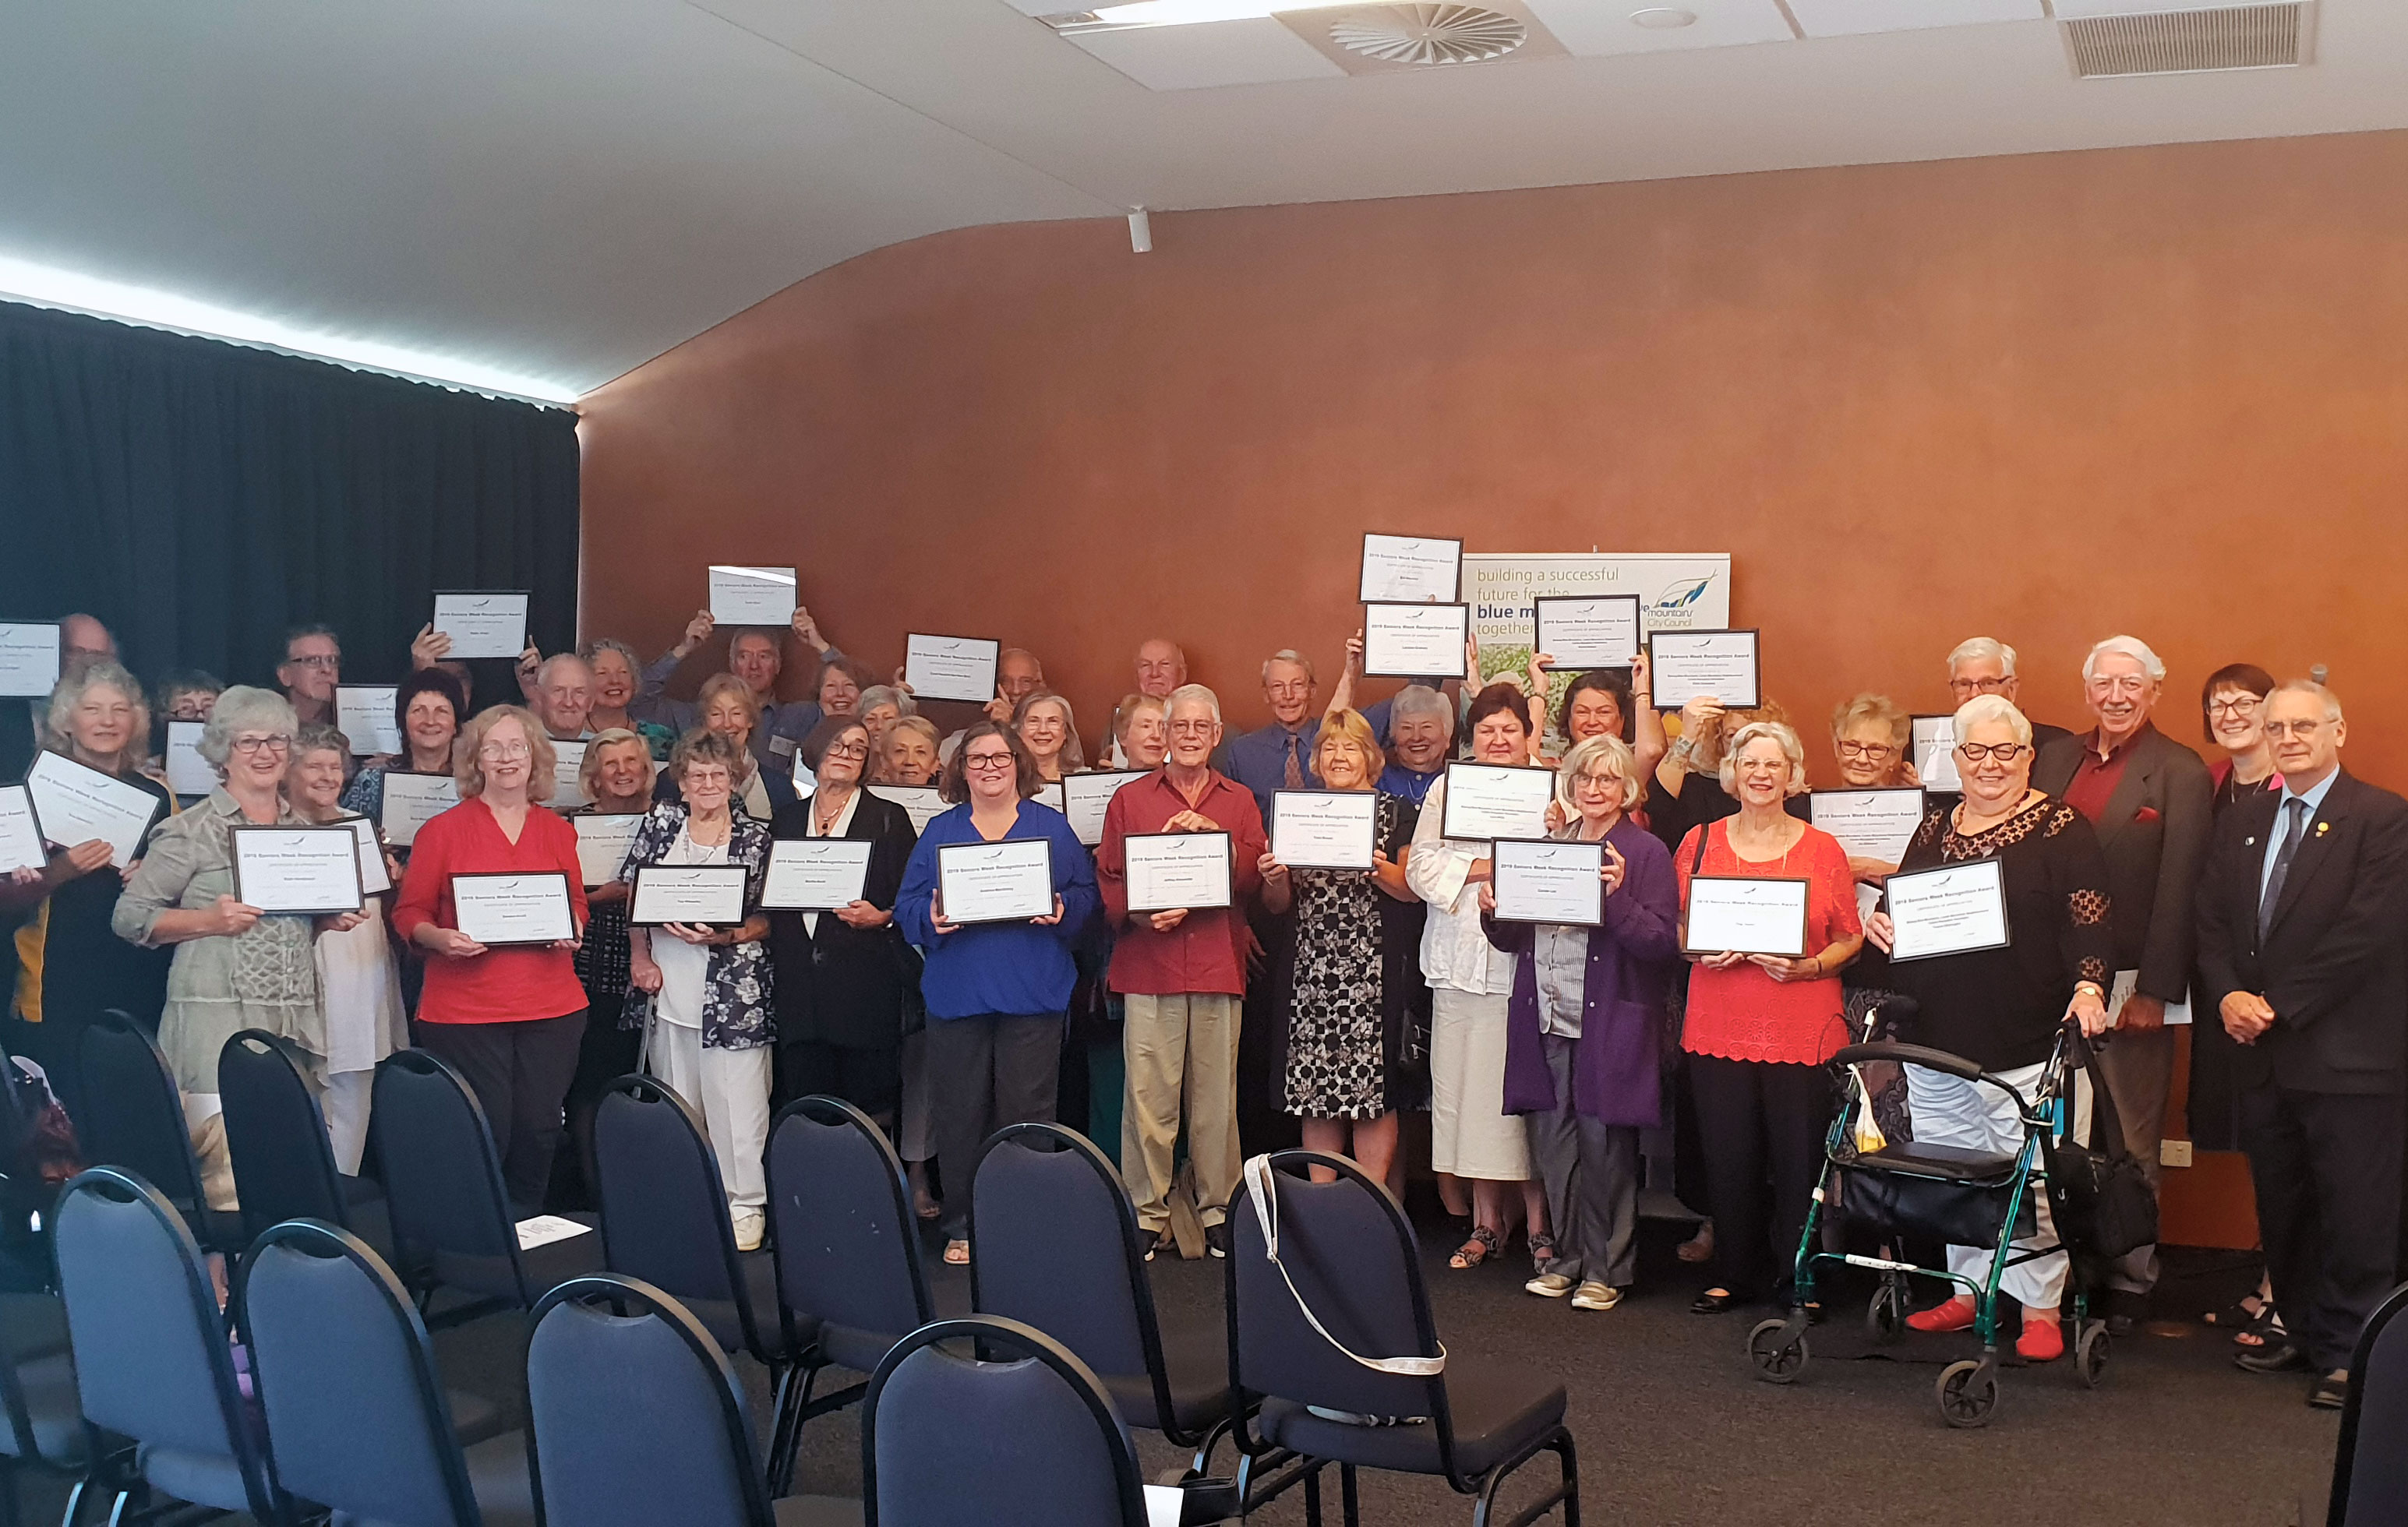 Recipients of the 2019 Seniors Week Recognition Awards, Member for Macquarie, Susan Templeman MP and Deputy Mayor Cr Chris Van der Kley.